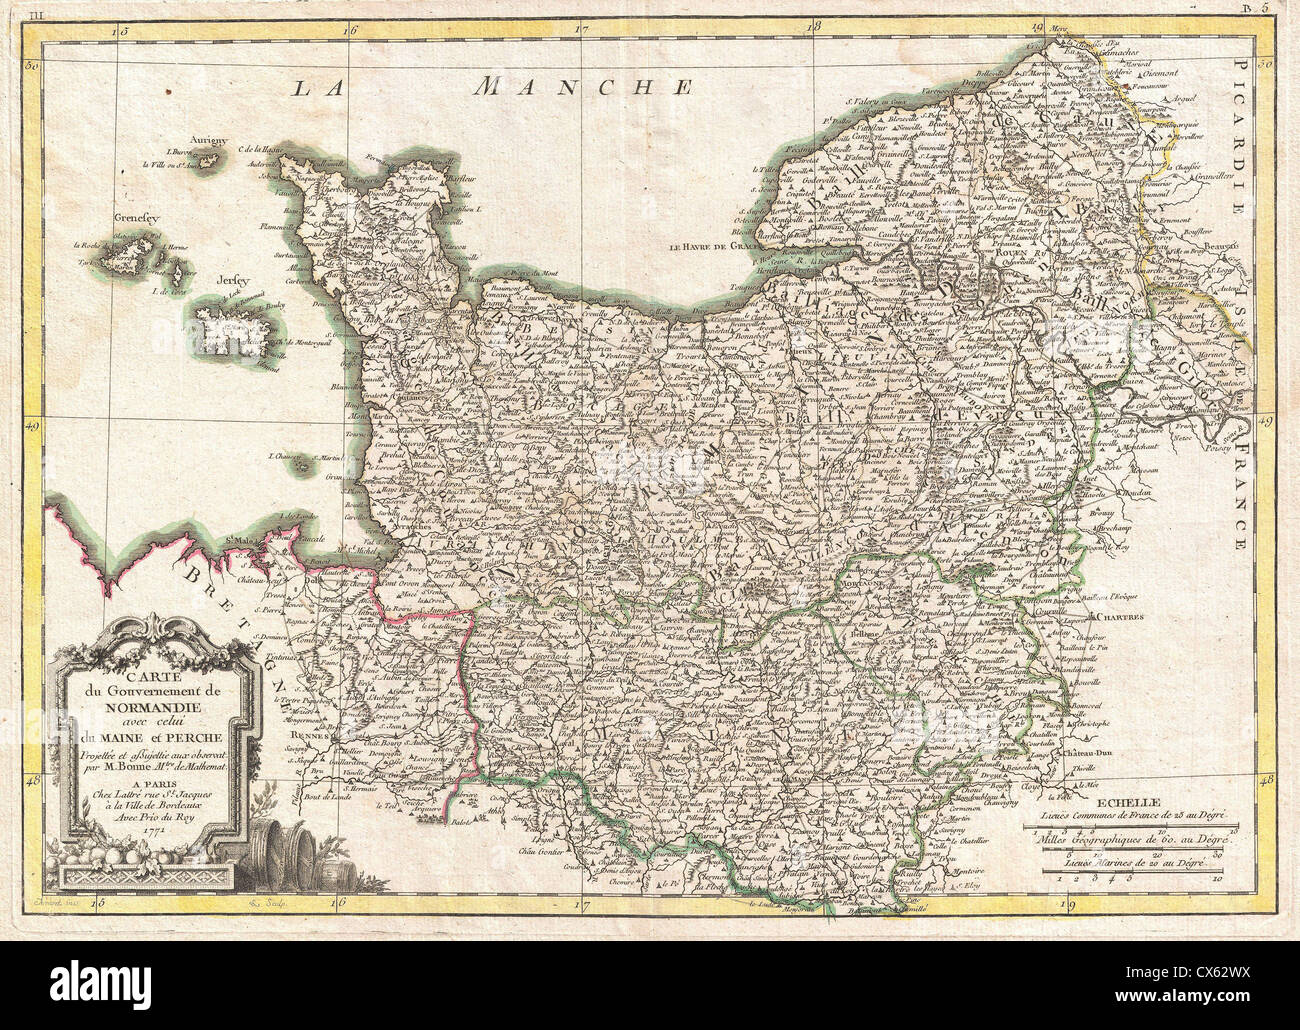 Map normandy france stock photos map normandy france stock images 1771 bonne map of normandy france stock image gumiabroncs Gallery